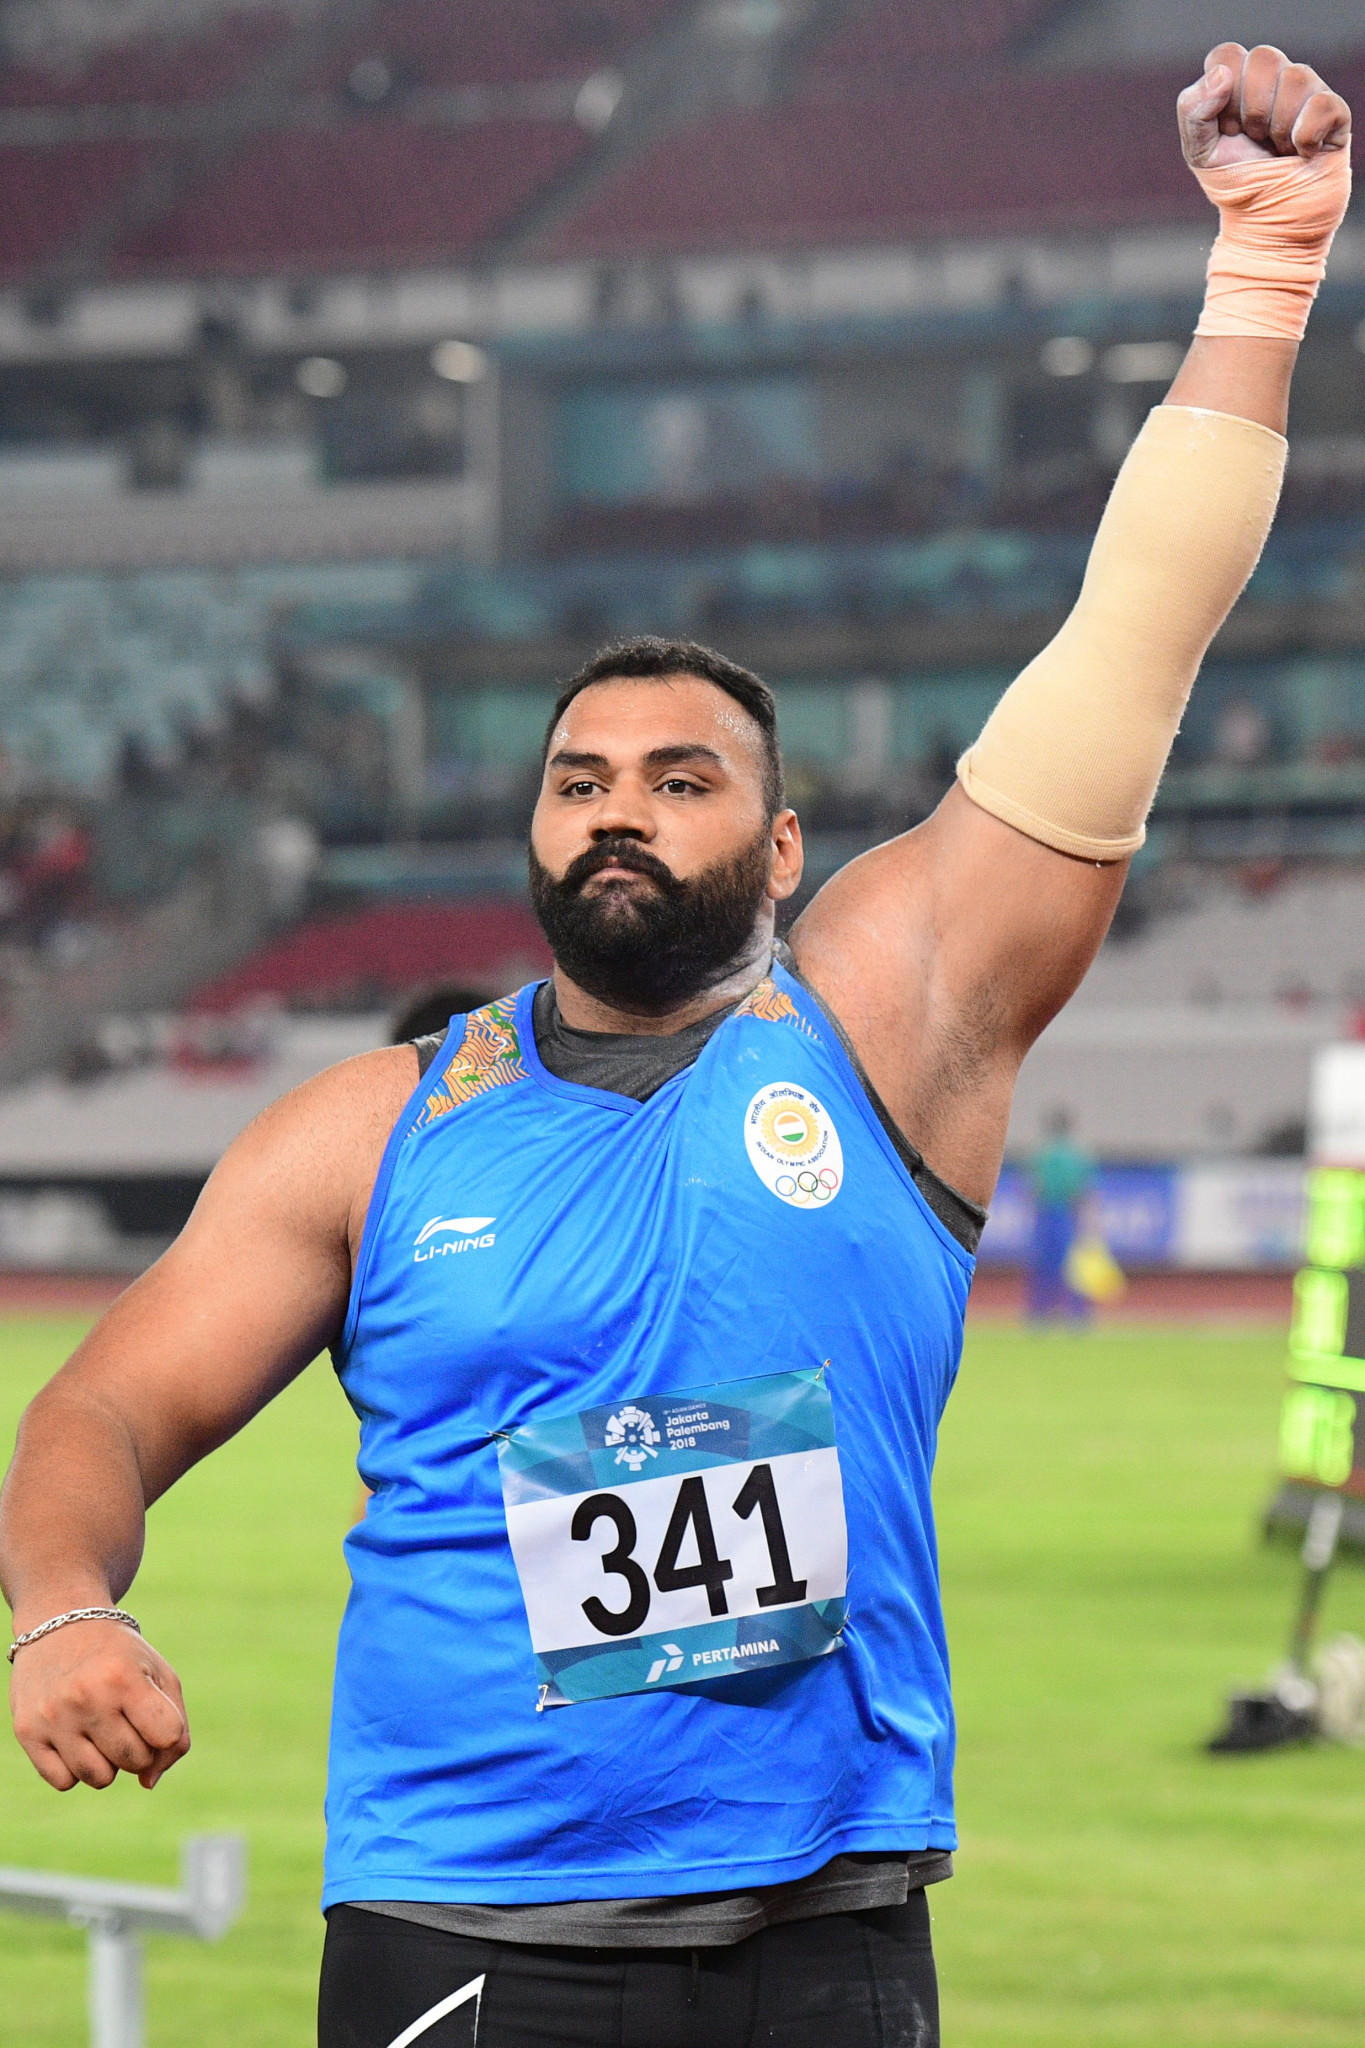 India's Tajinderpal Singh Toor won the men's shot put with a Games record ©Getty Images